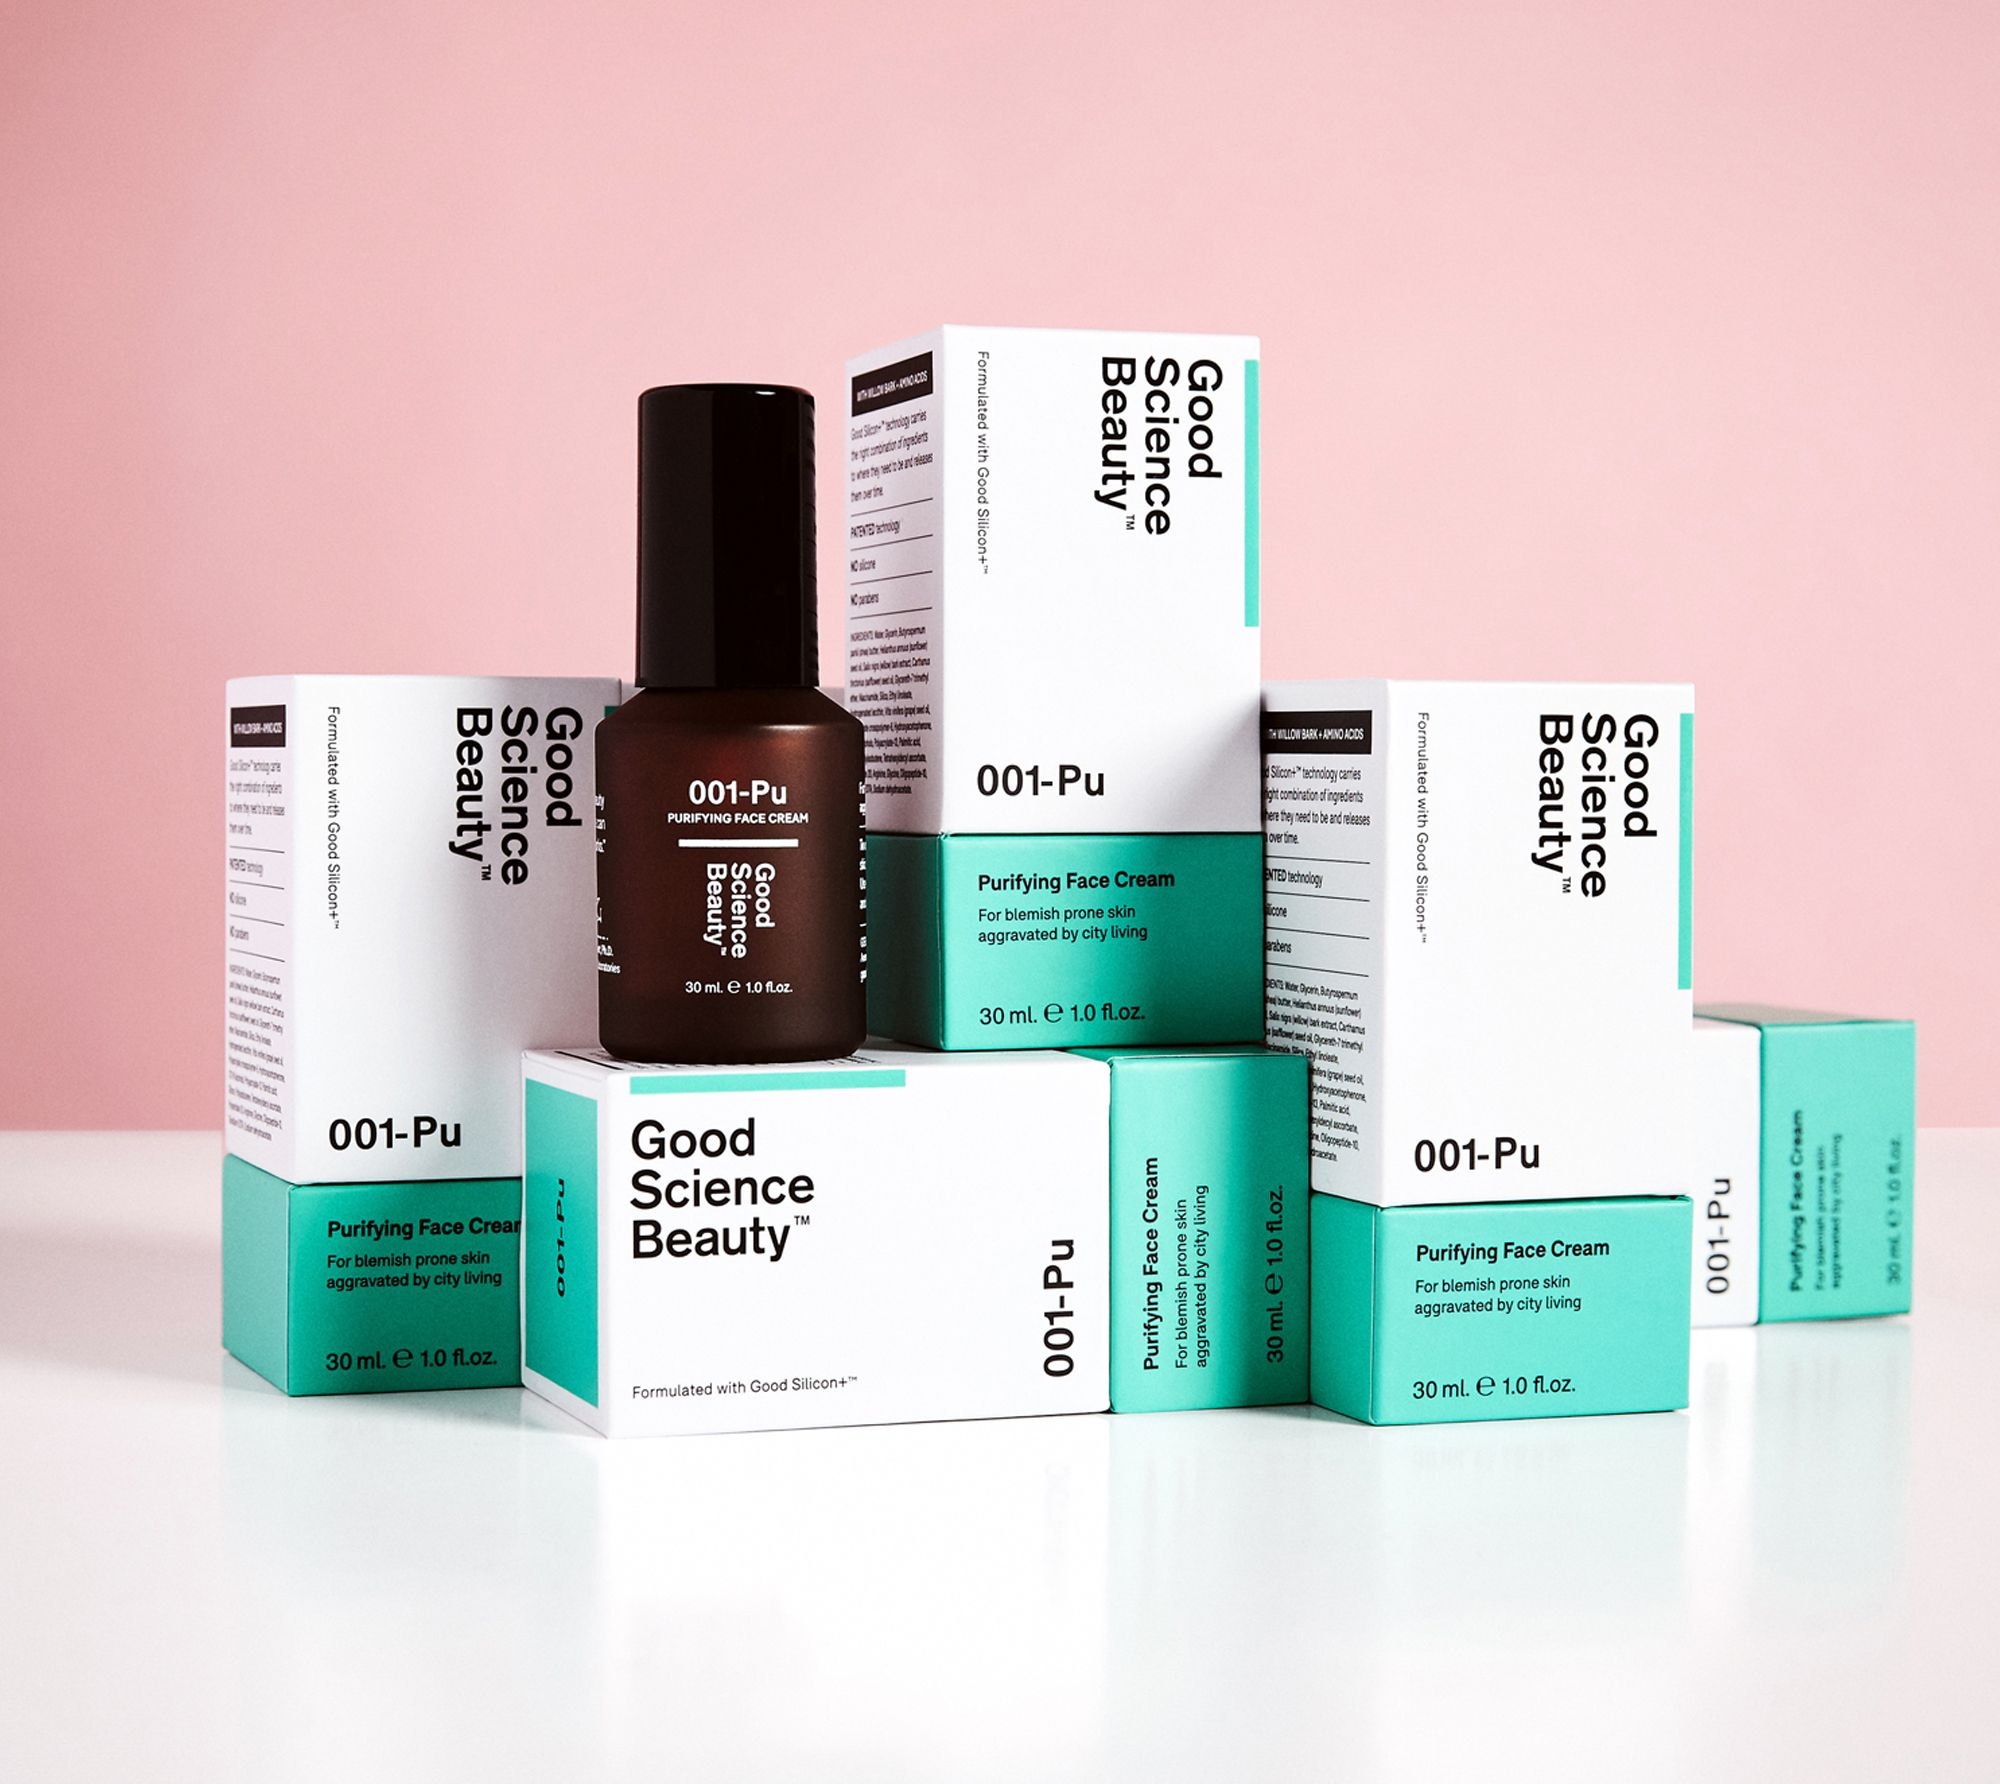 Naming Branding Packaging And Promotional Content For New Generation Skincare Brand World Brand Design Beauty Packaging Beauty Science Skincare Packaging